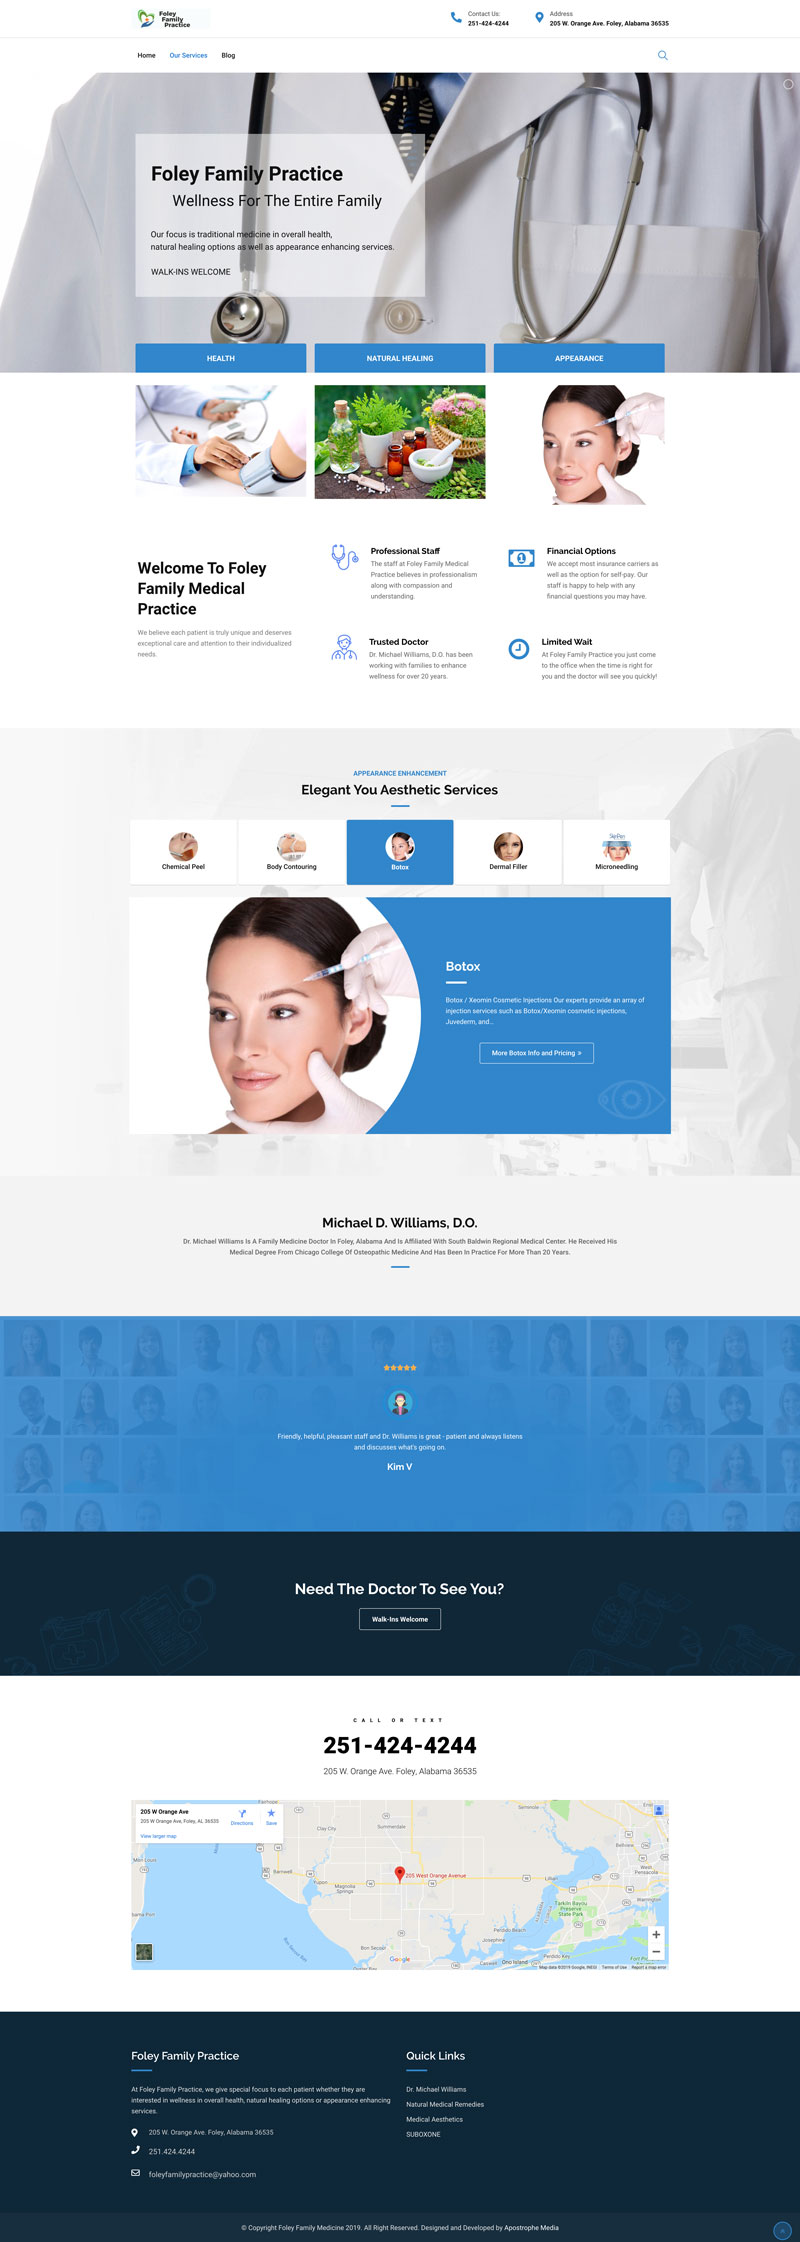 foley-family-medical-website-design